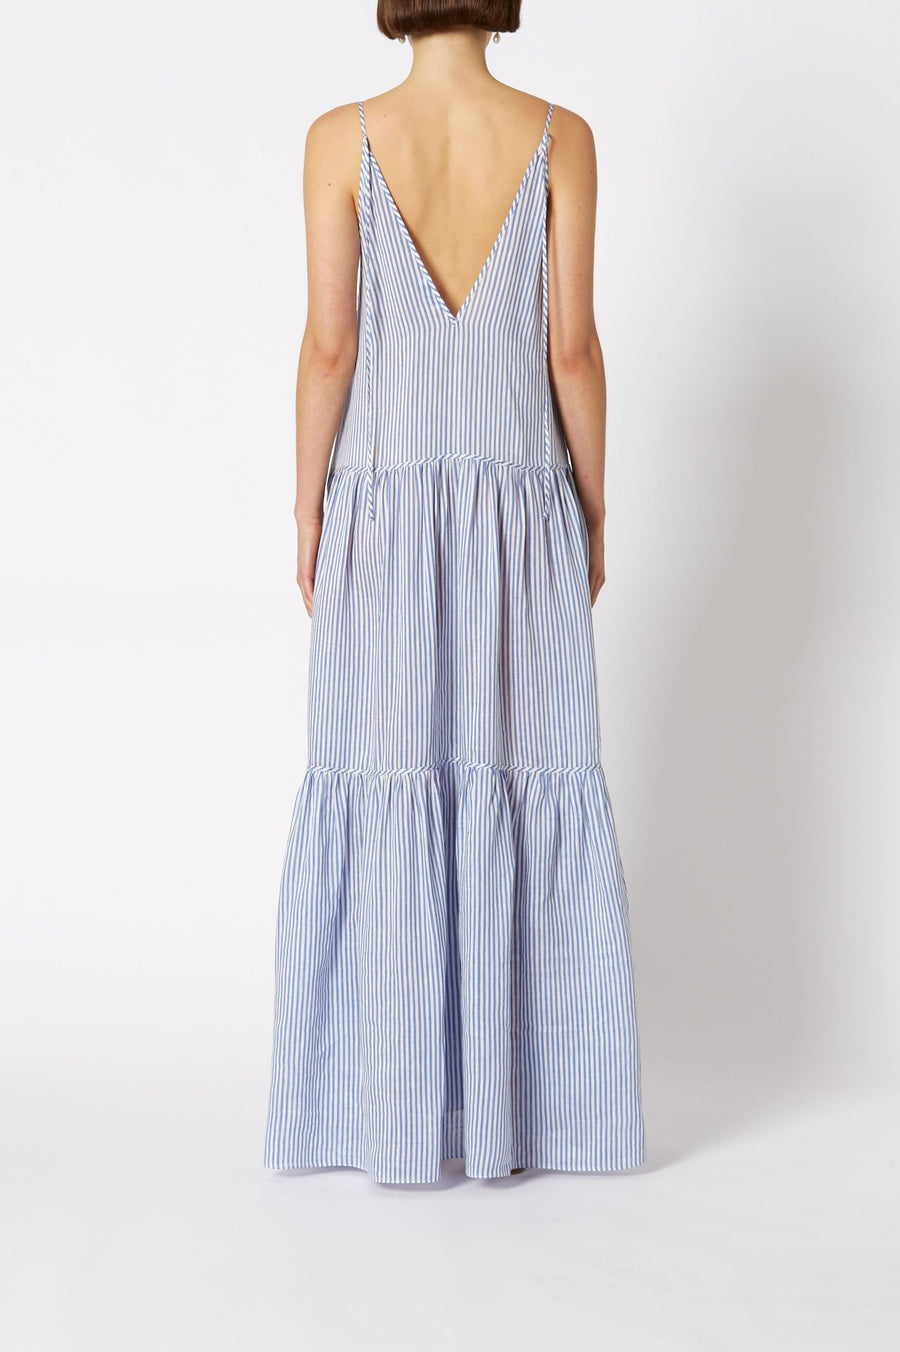 STRIPE VOILE DRESS WHITE-BLUE, Loose fit, Spaghetti straps